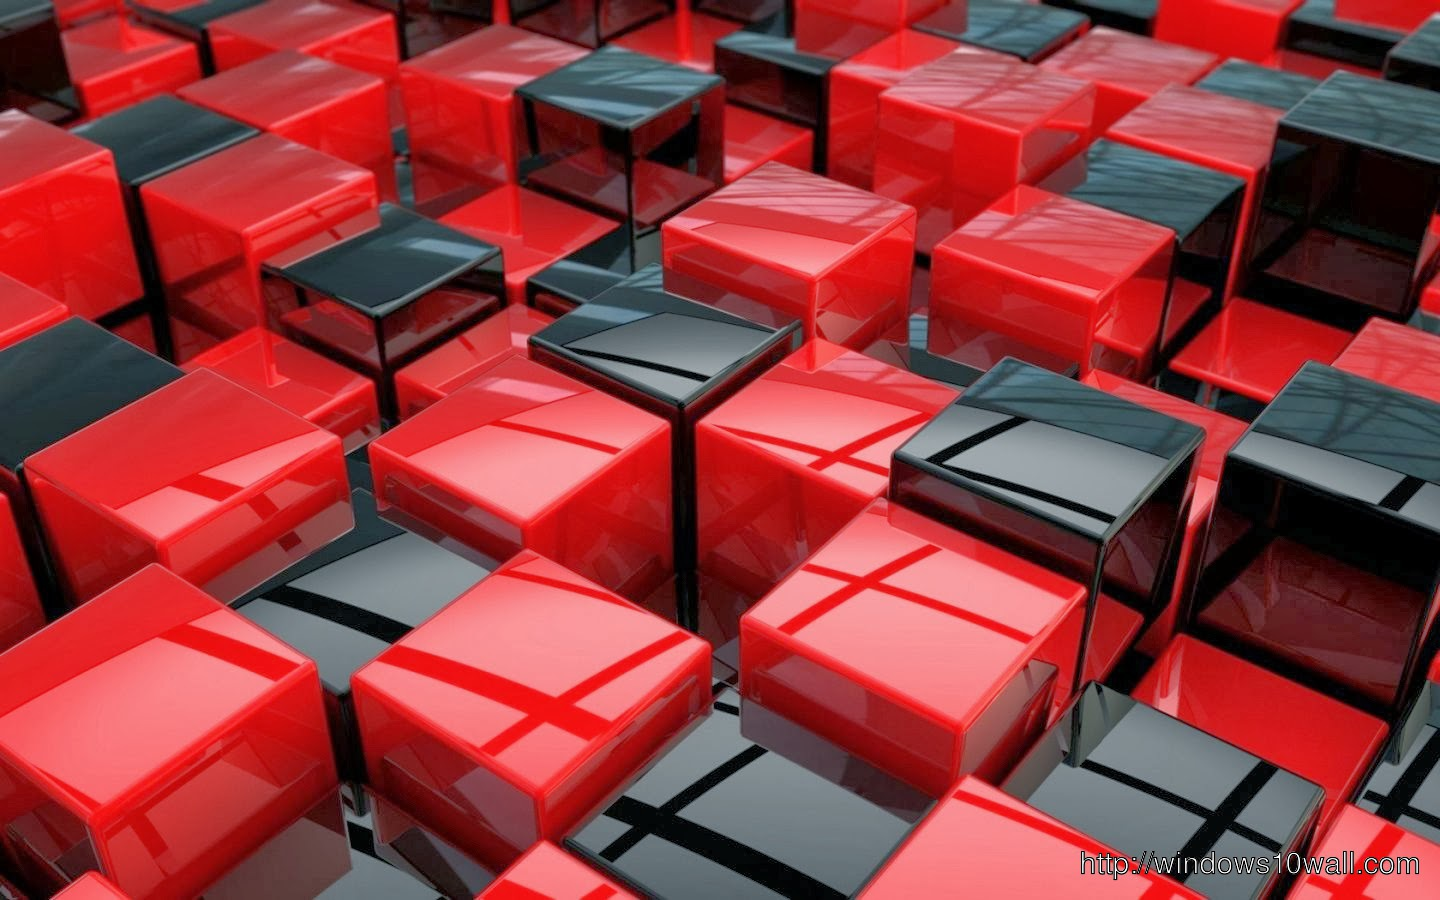 Abstract Background Wallpaper Cube Black And Red - windows